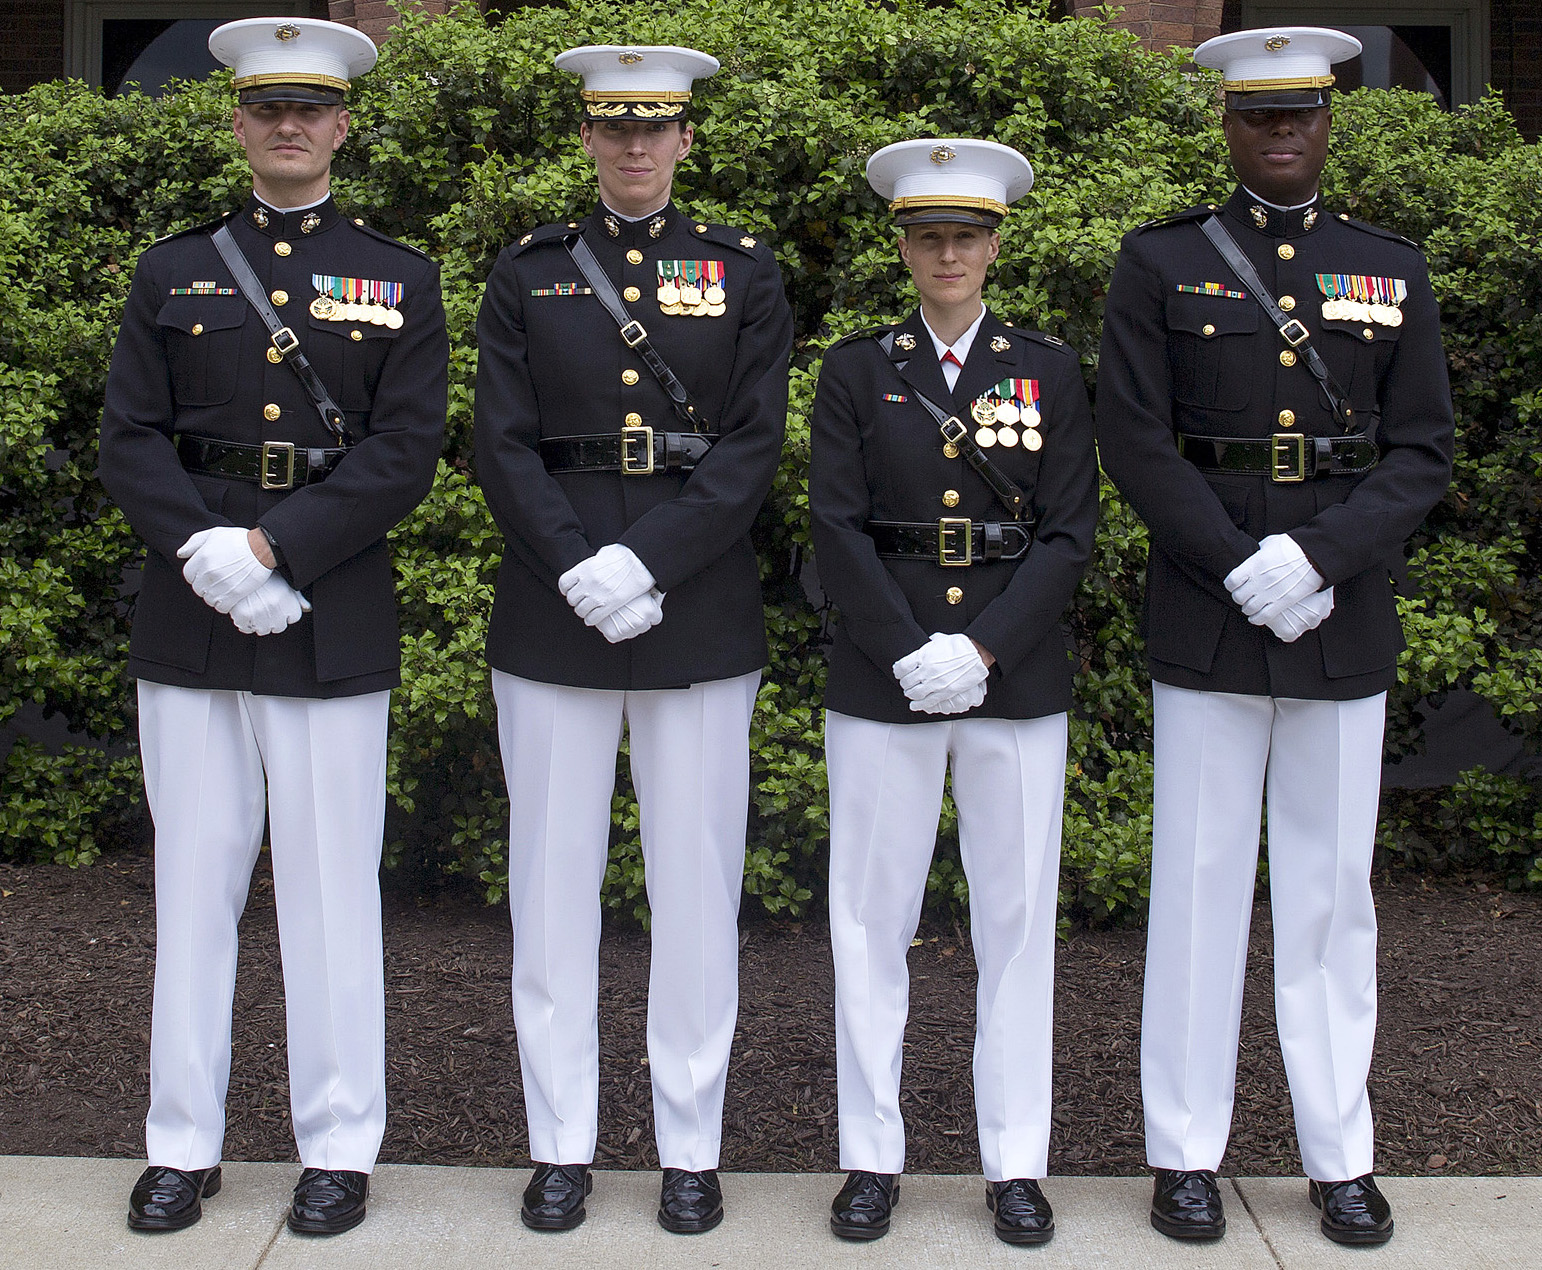 dress - How to navy wear dress blue uniform video